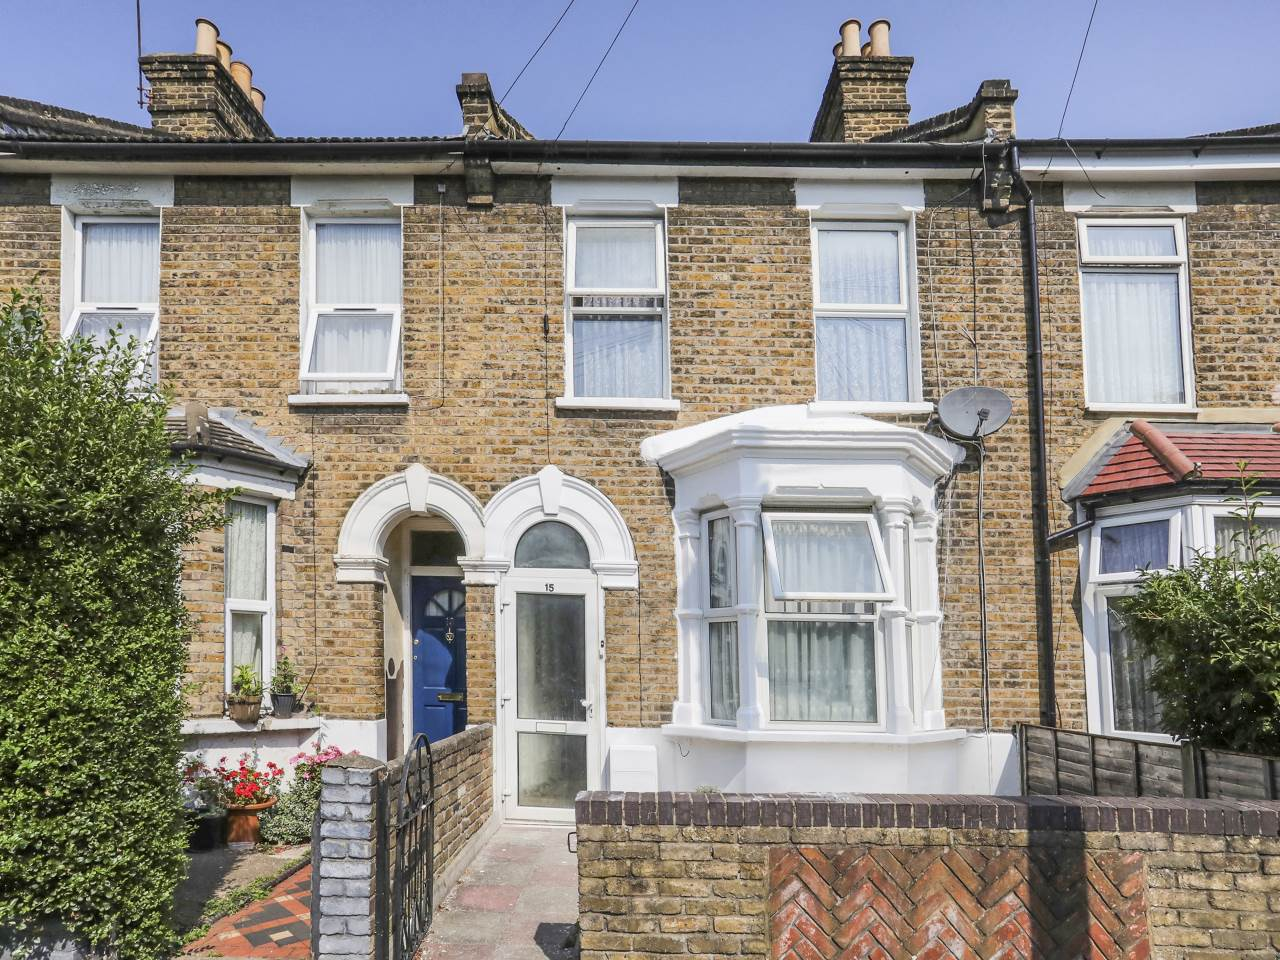 3 bed house for sale in Leyton , E10